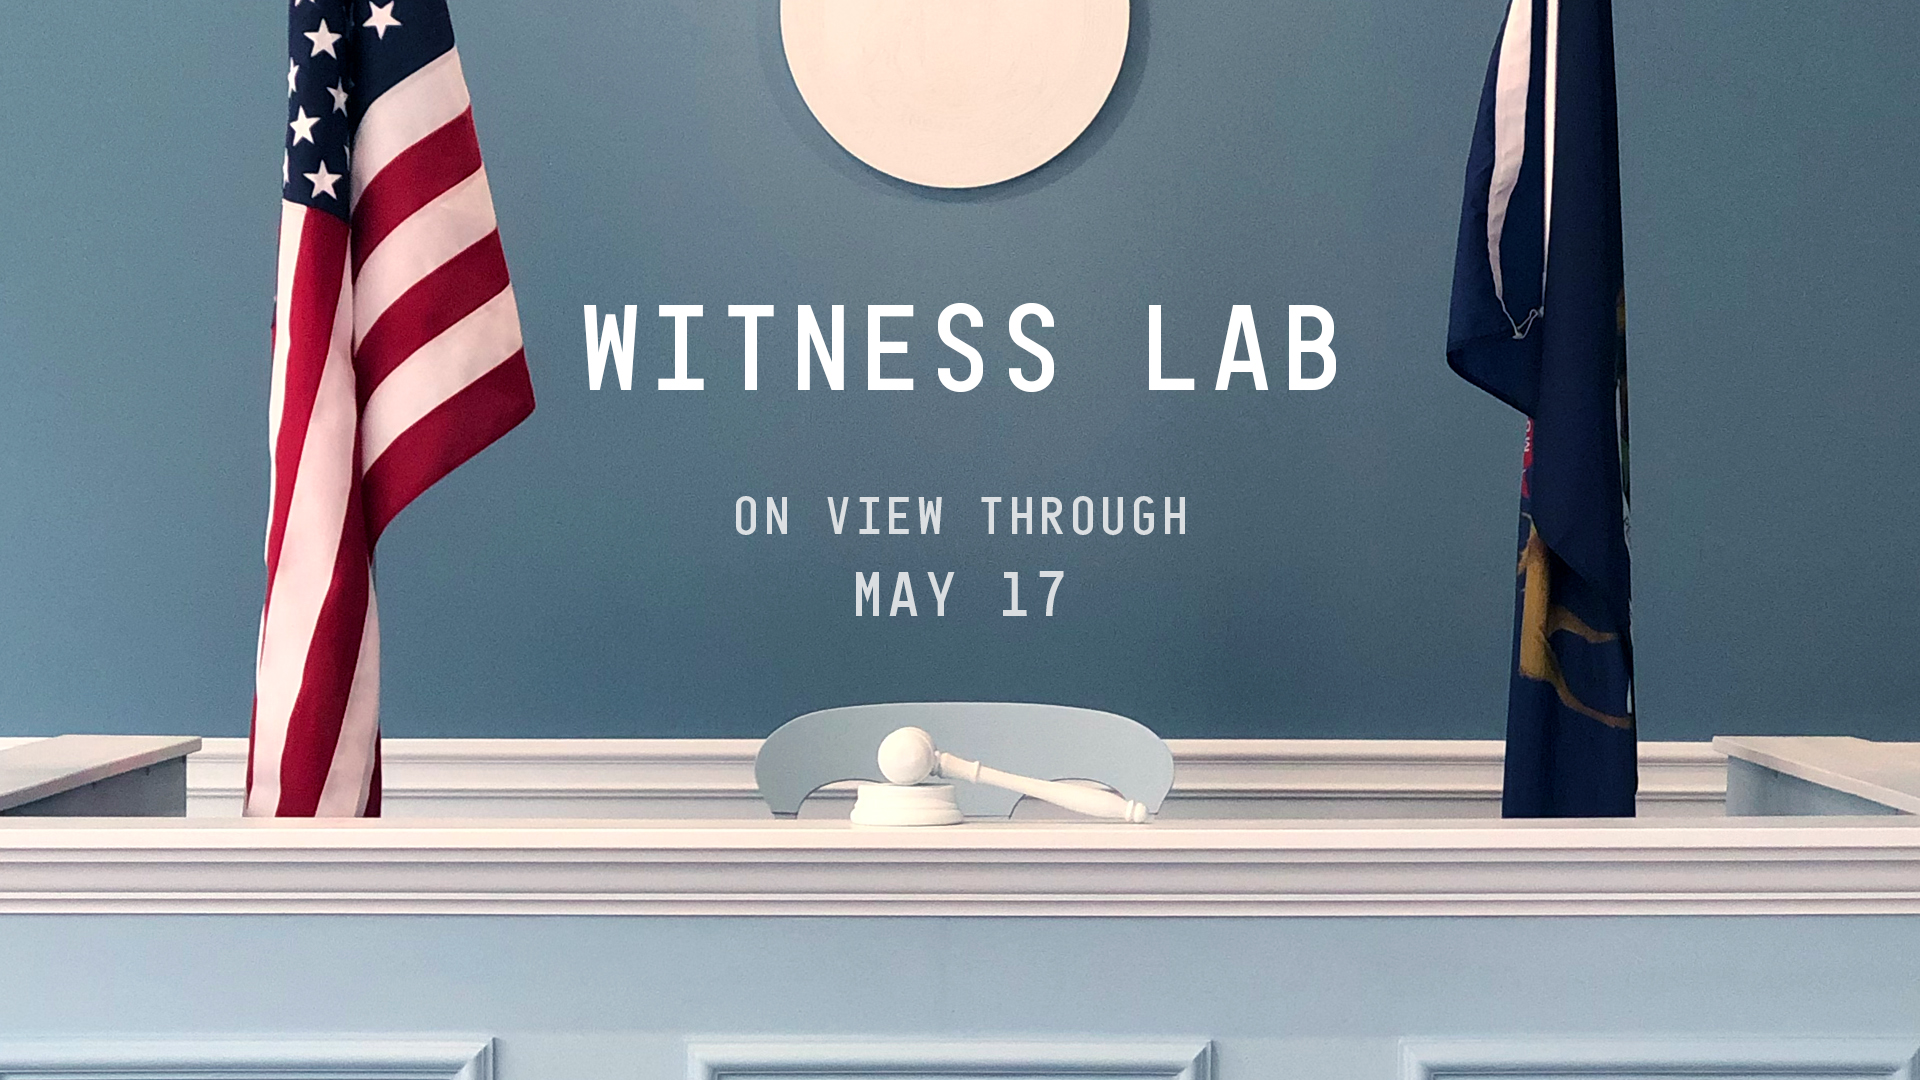 Witness Lab - On View Through May 17